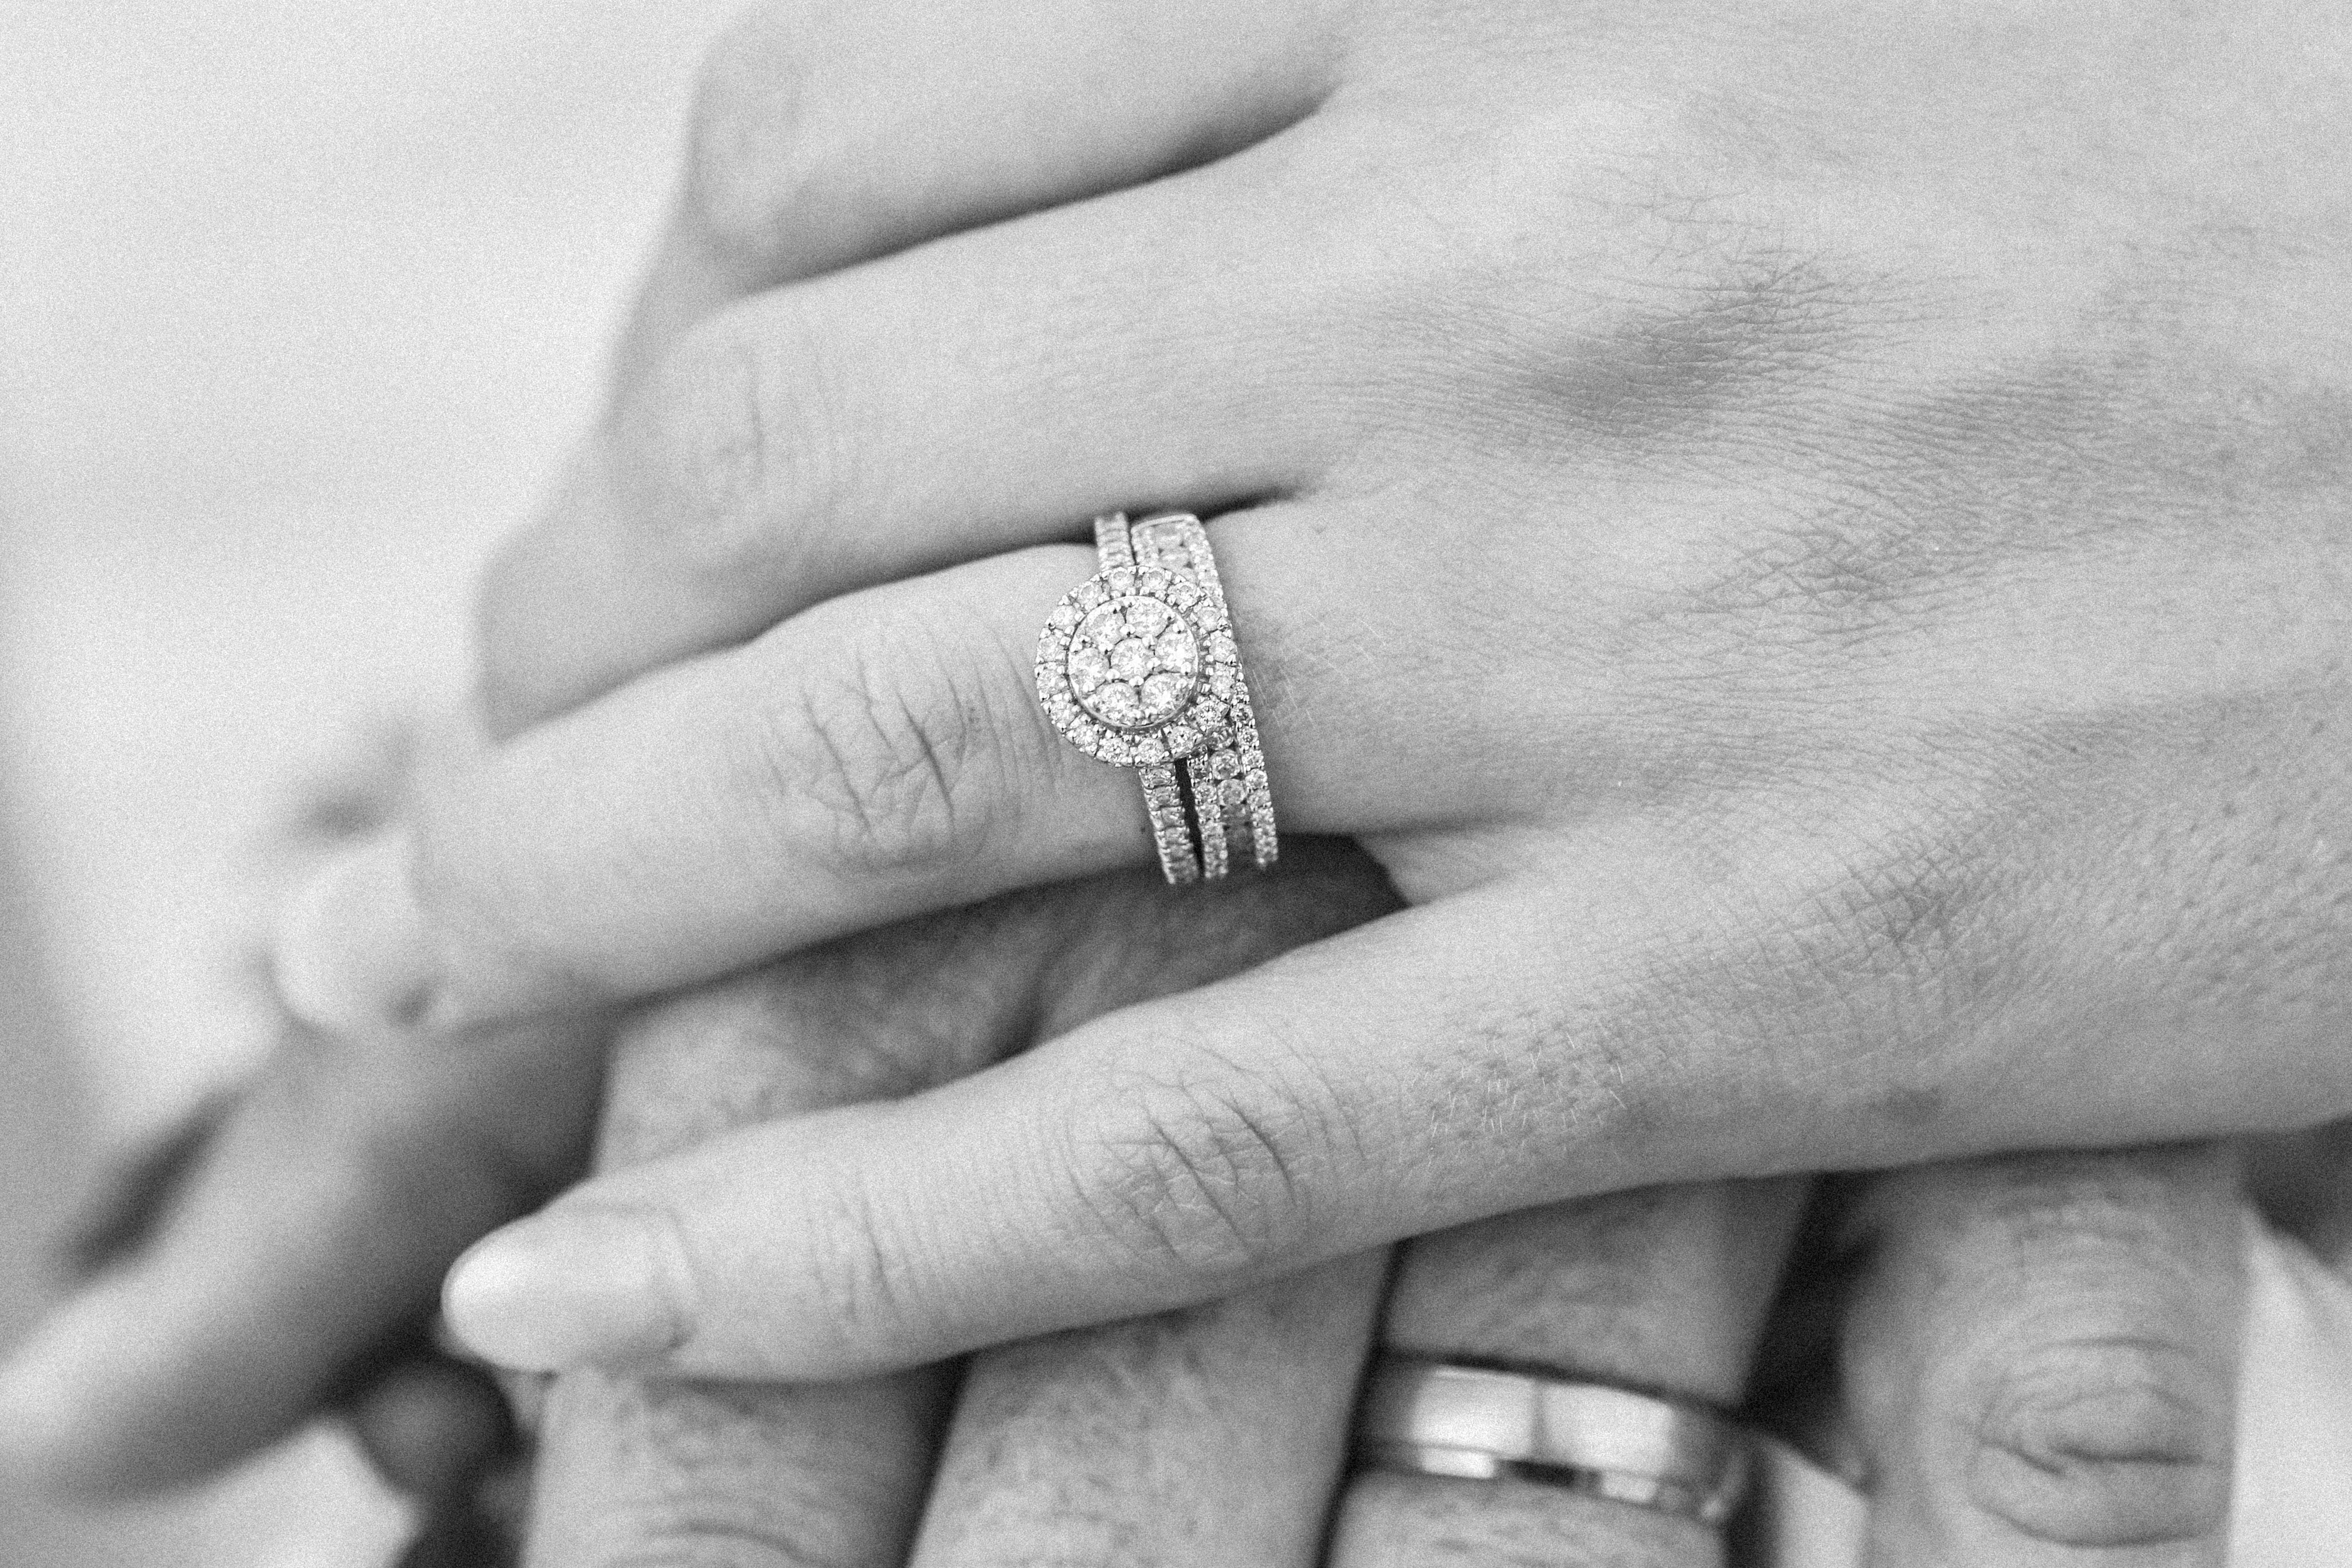 Hands Of A Married Couple Wearing Wedding Rings